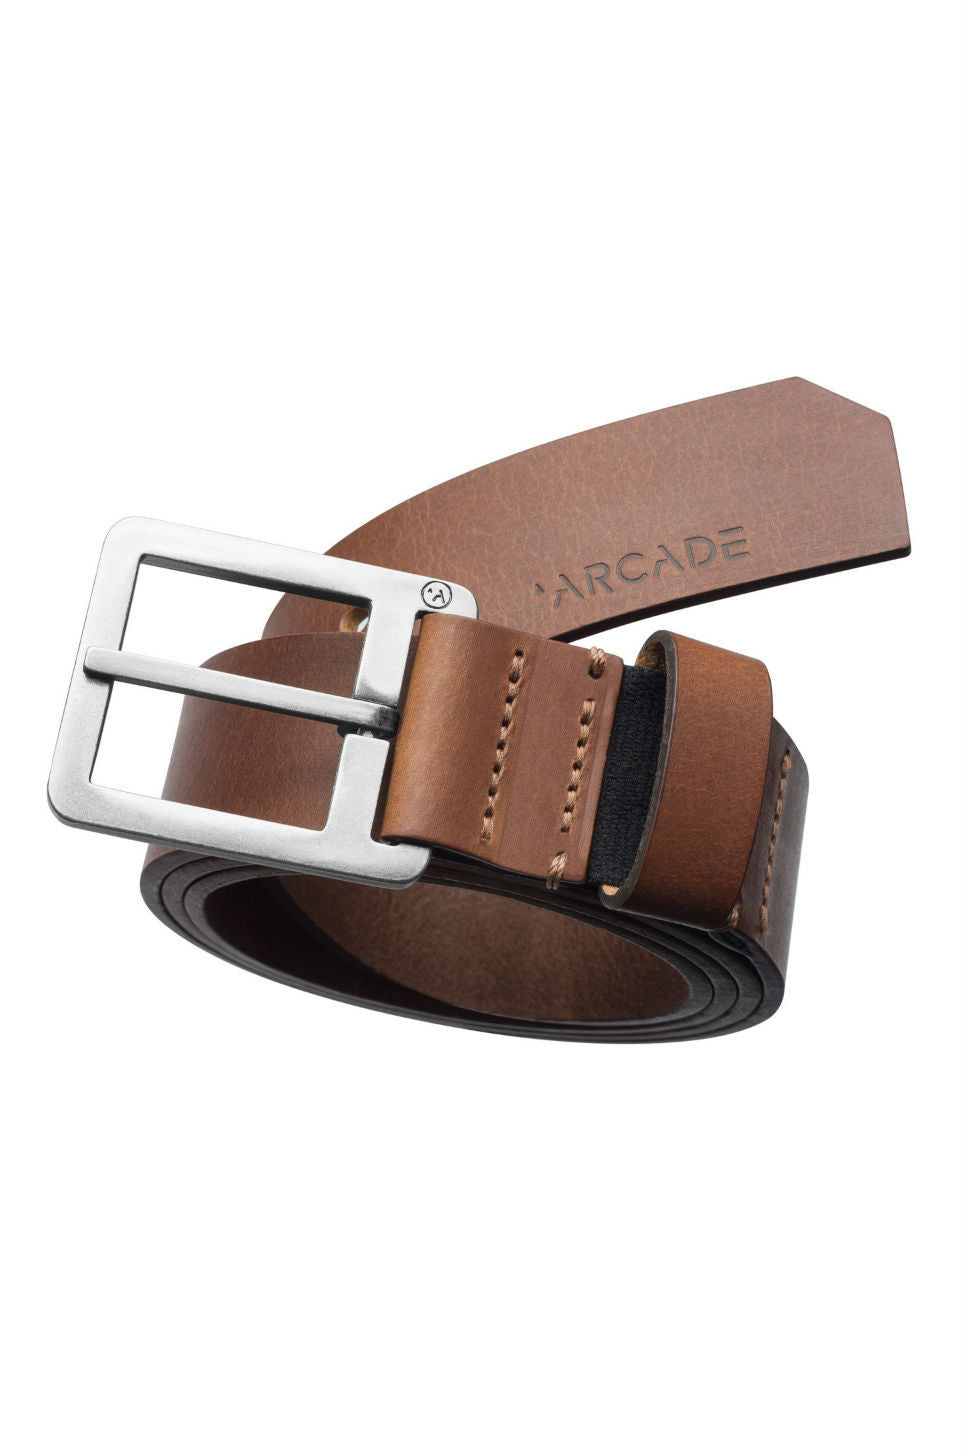 Arcade - Padre Belt - Brown